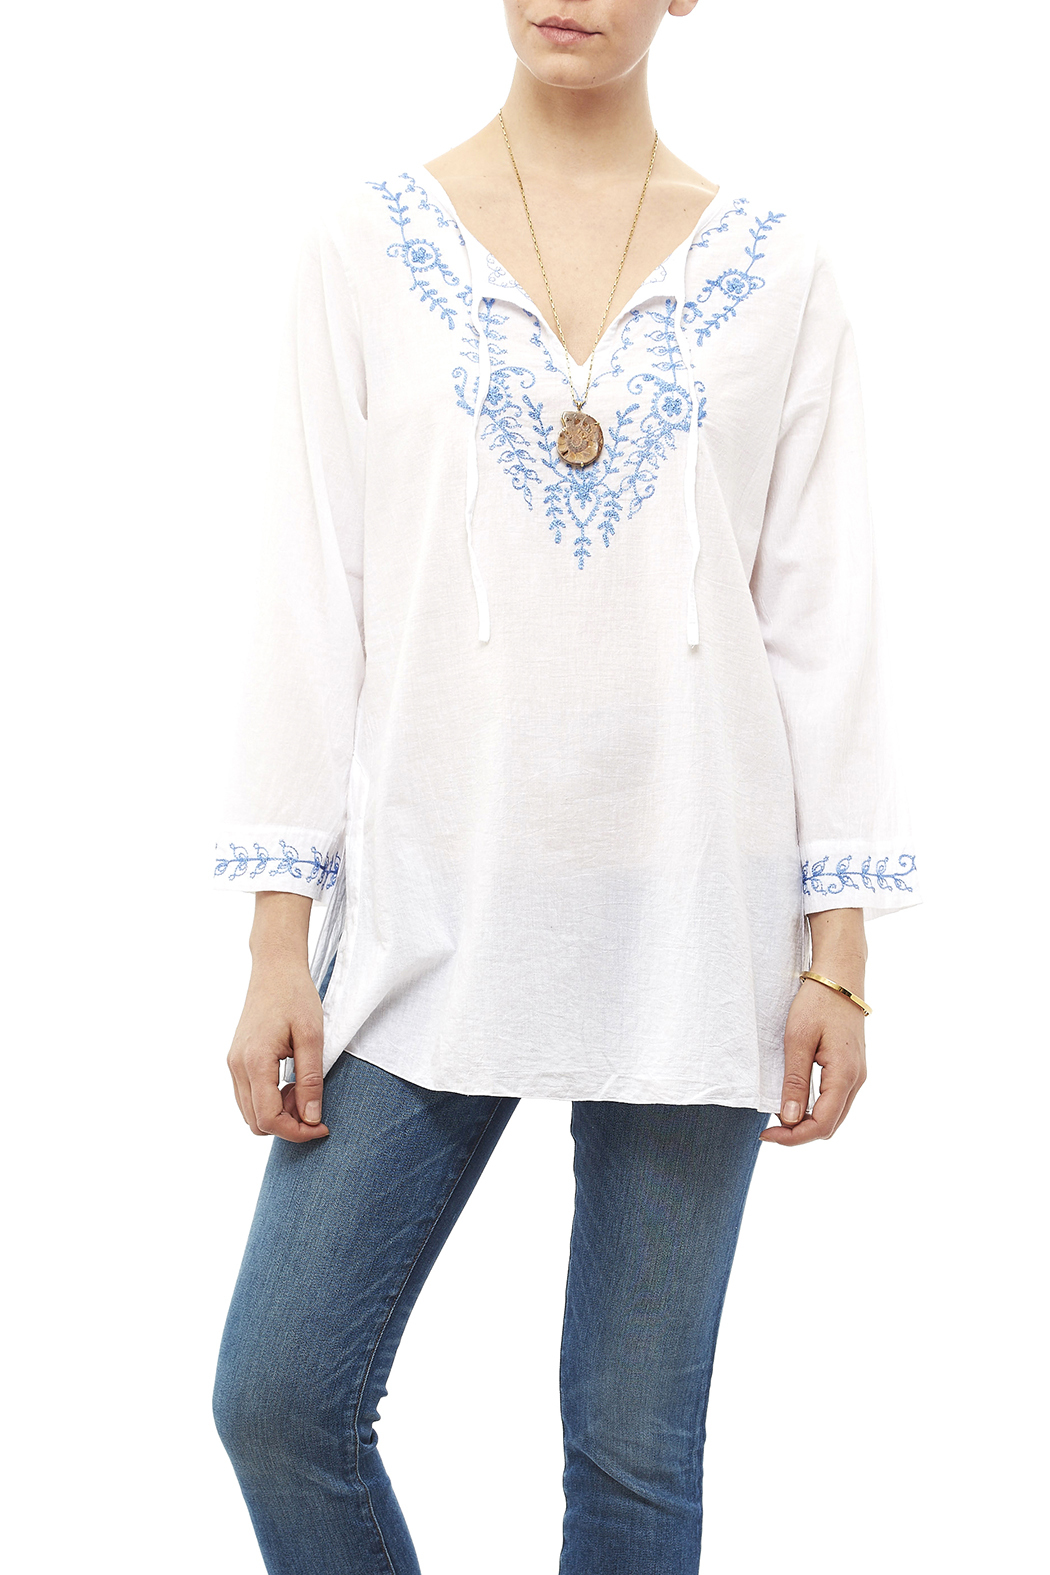 Fresco by Nomadic Traders White Embroidered Blouse - Main Image